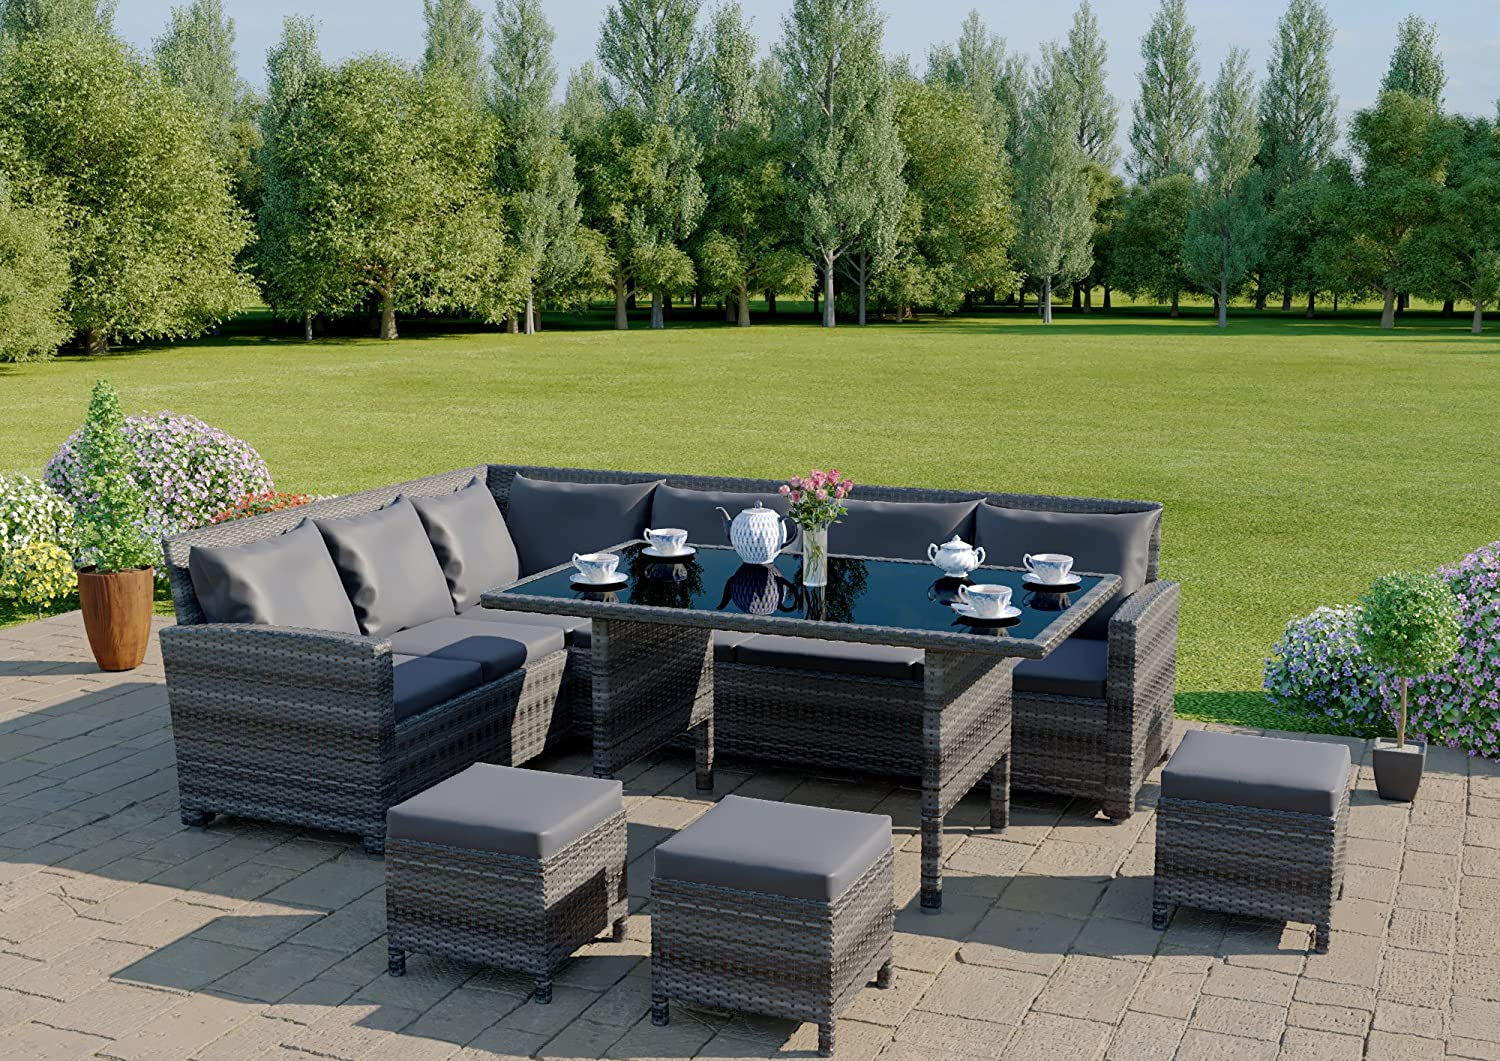 Top 10 Best Garden Furniture